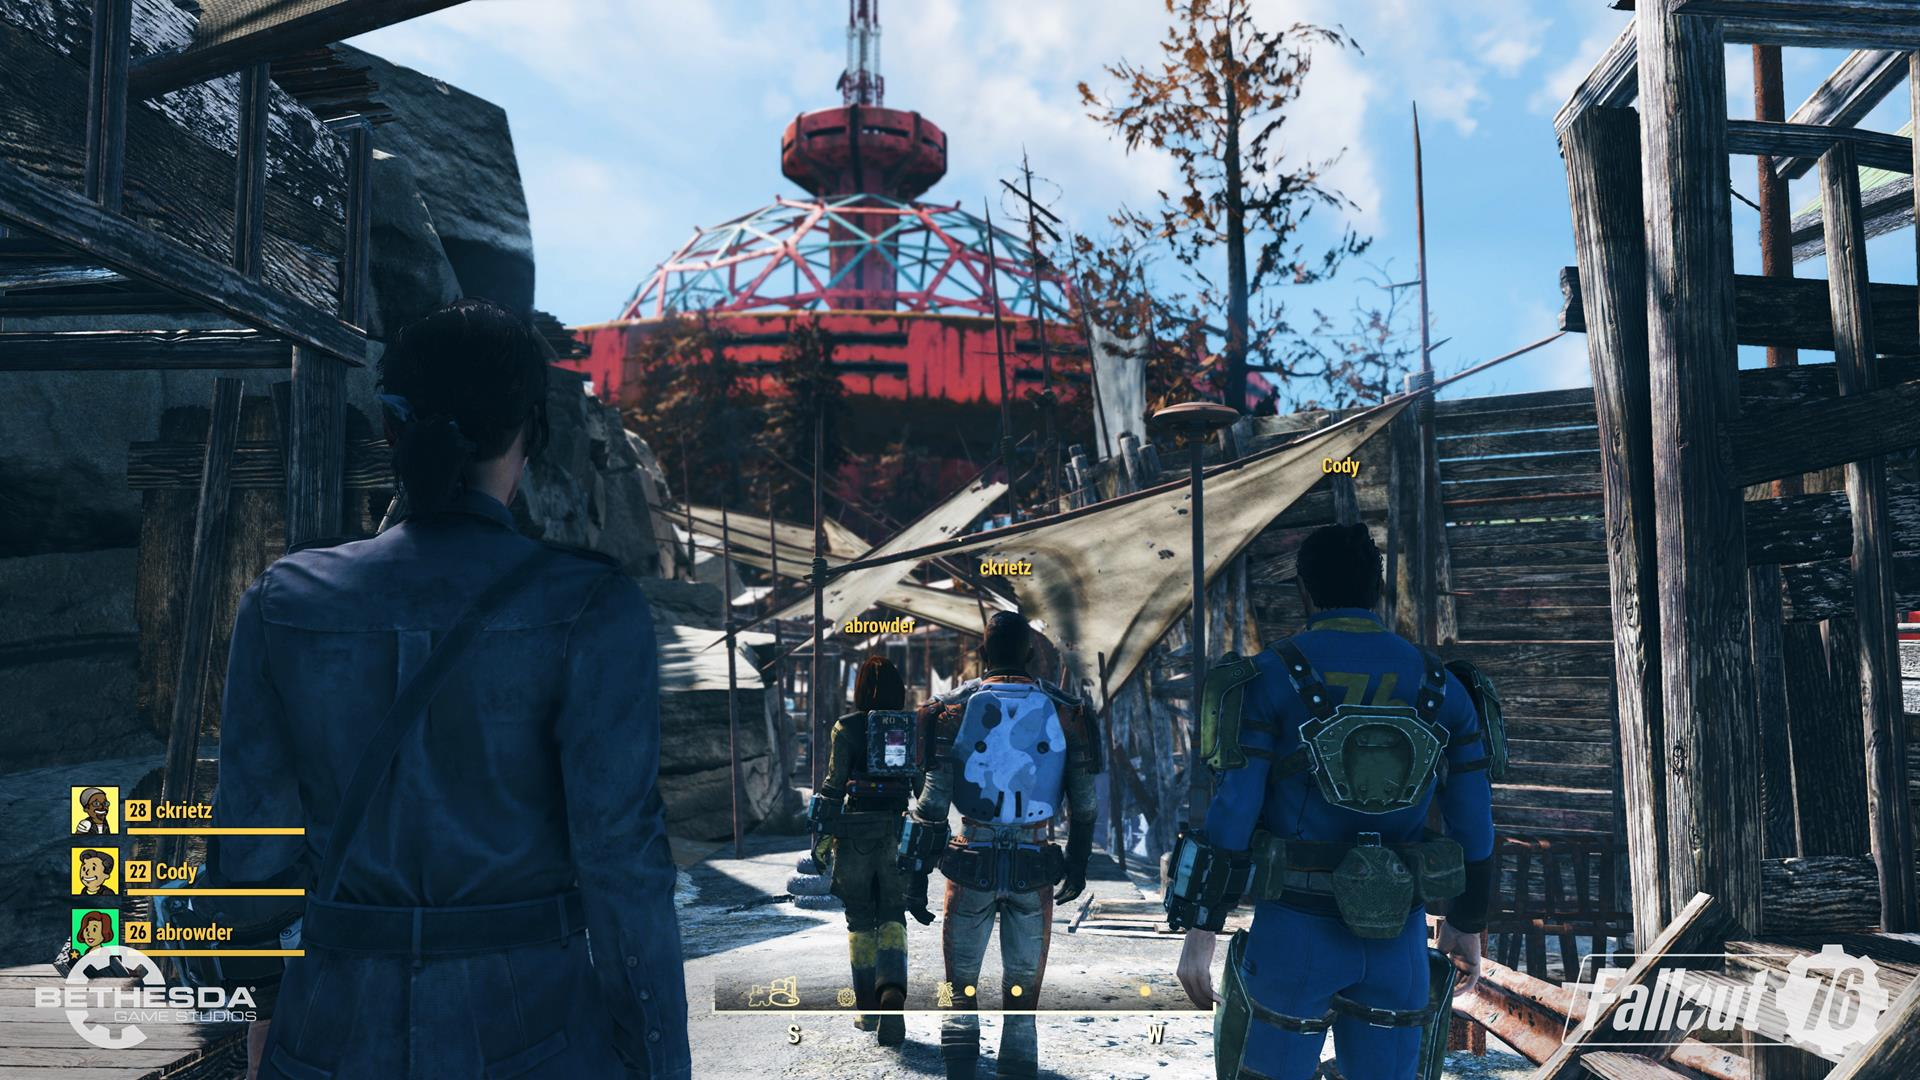 Fallout 76 players discover invisibility bug - VG247